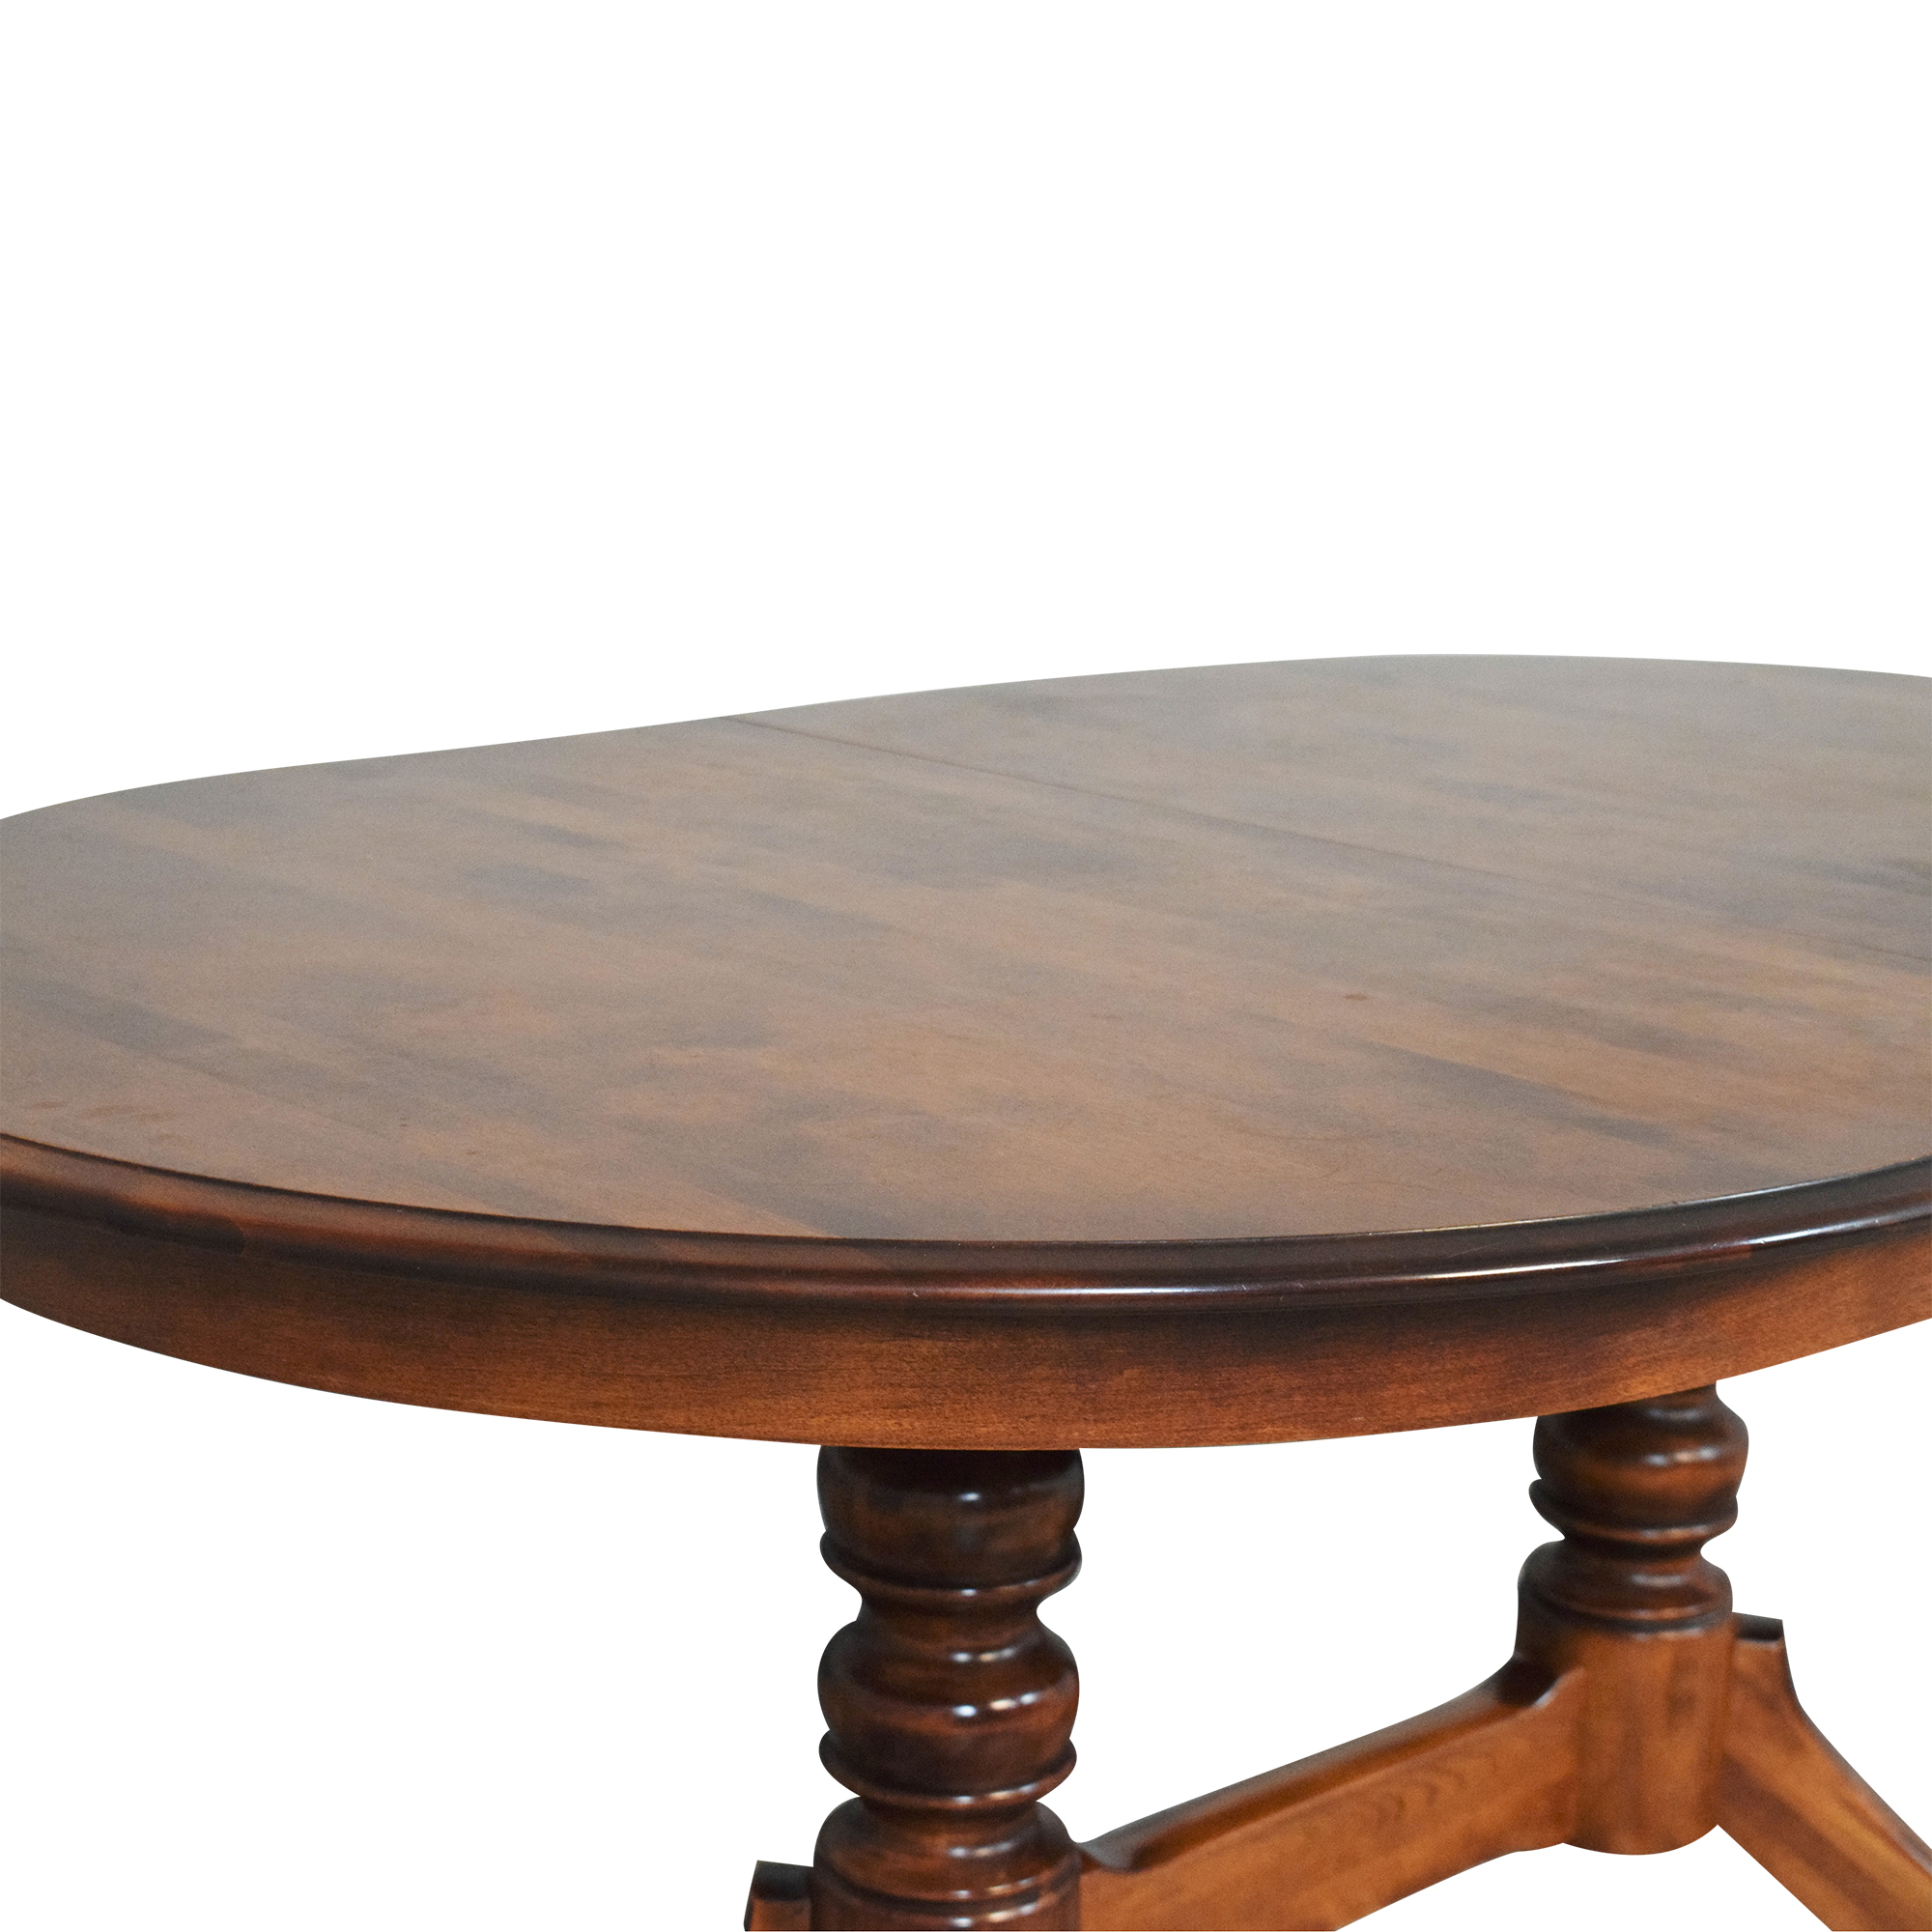 Canadel Canadel Extendable Dining Table nyc